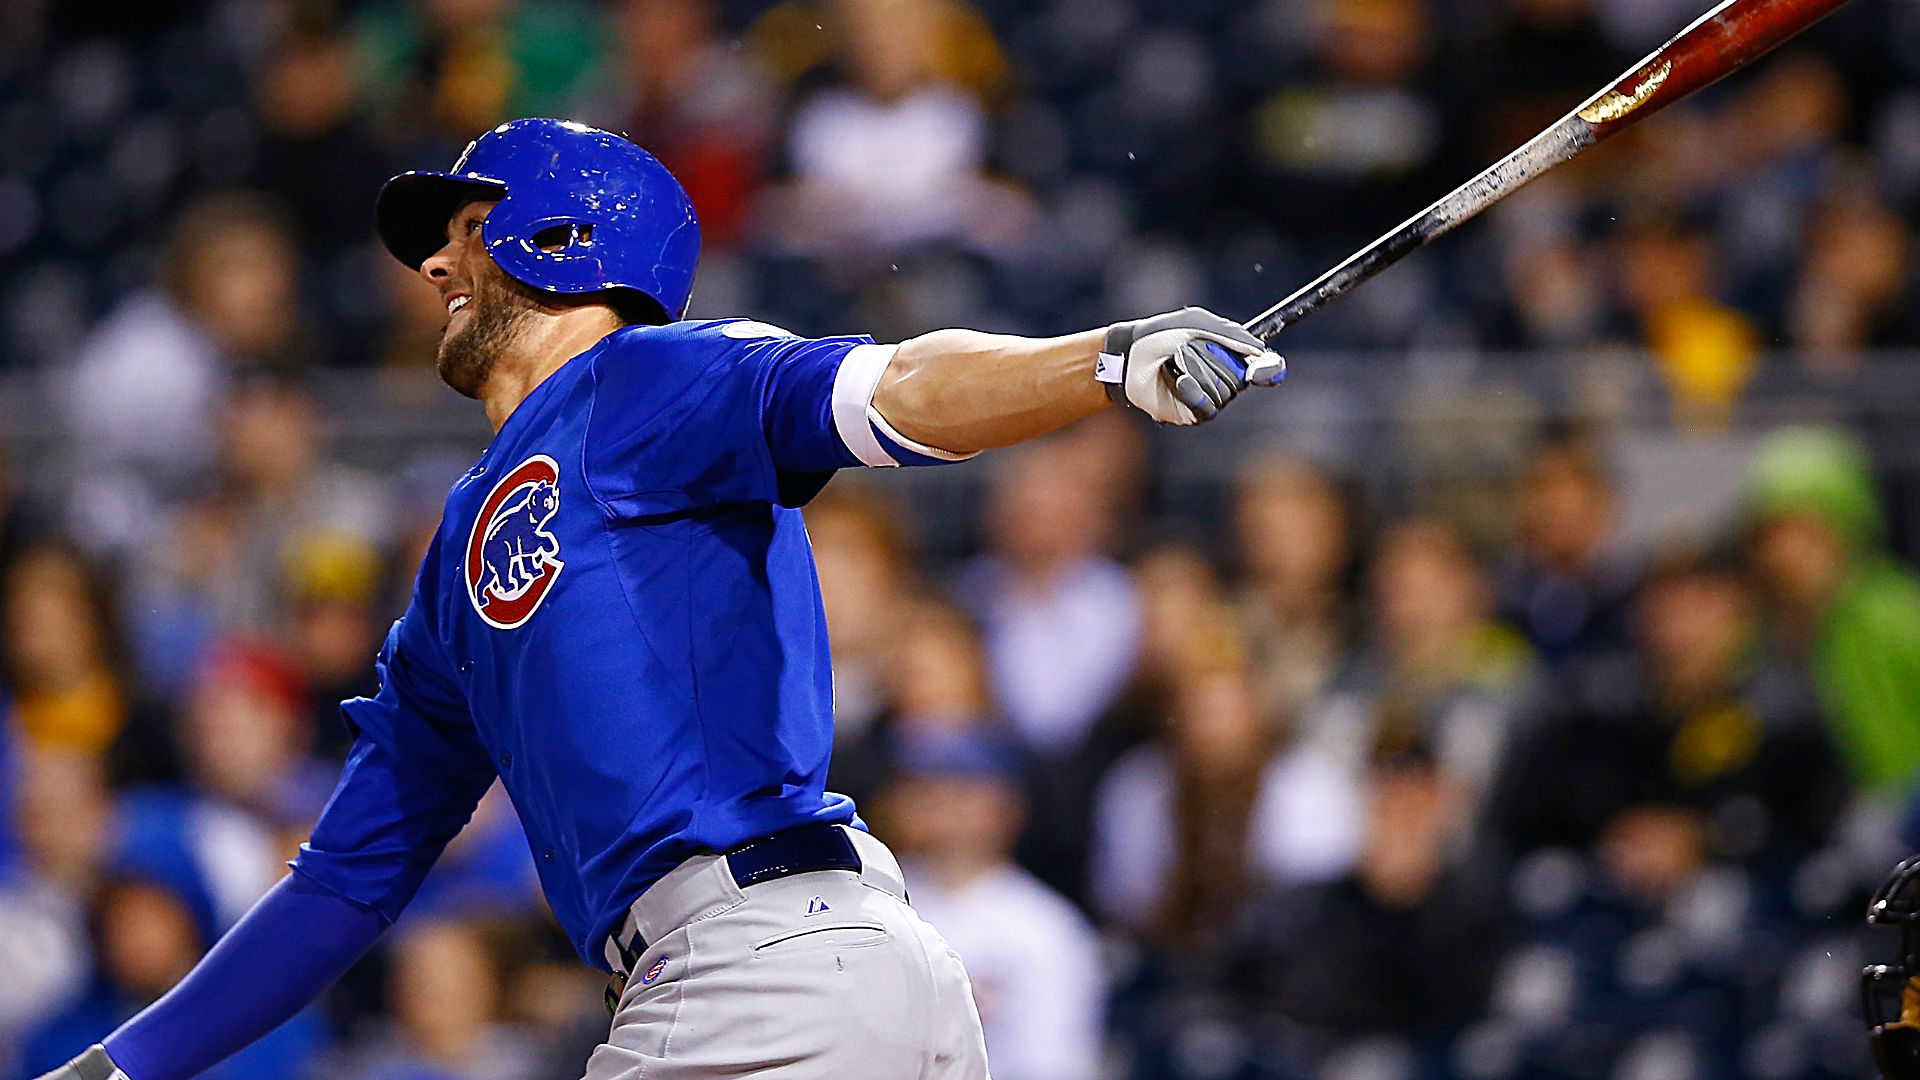 Nightly 9: Kris Bryant extends hitting streak with HR; Giants complete historic sweep of Dodgers